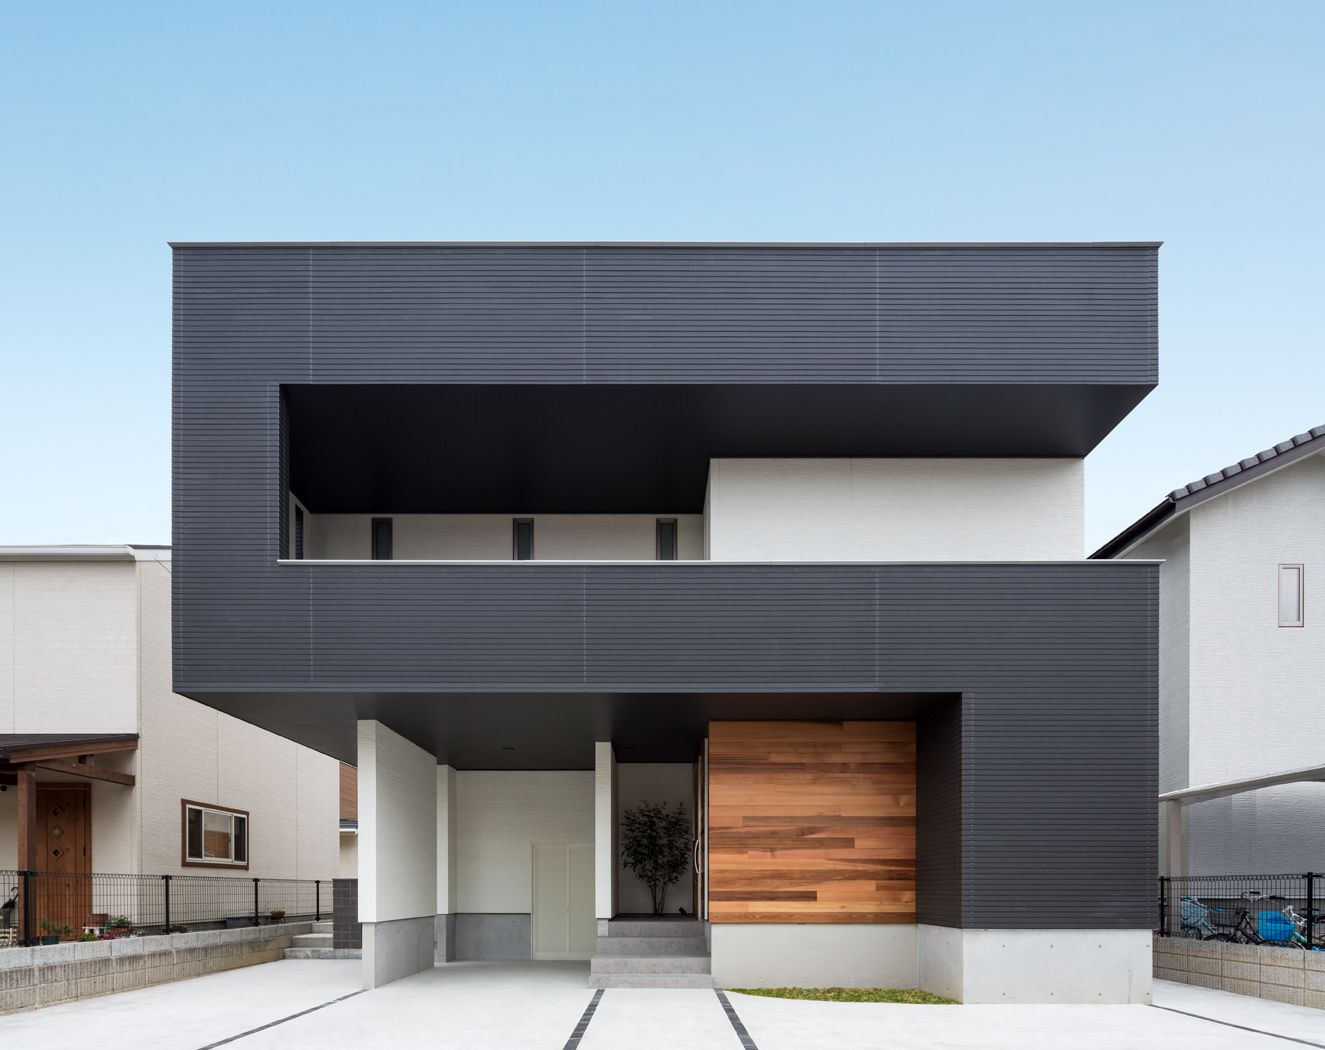 Architect Show co.,Ltd - Project - D-house「House of Polygon ... on